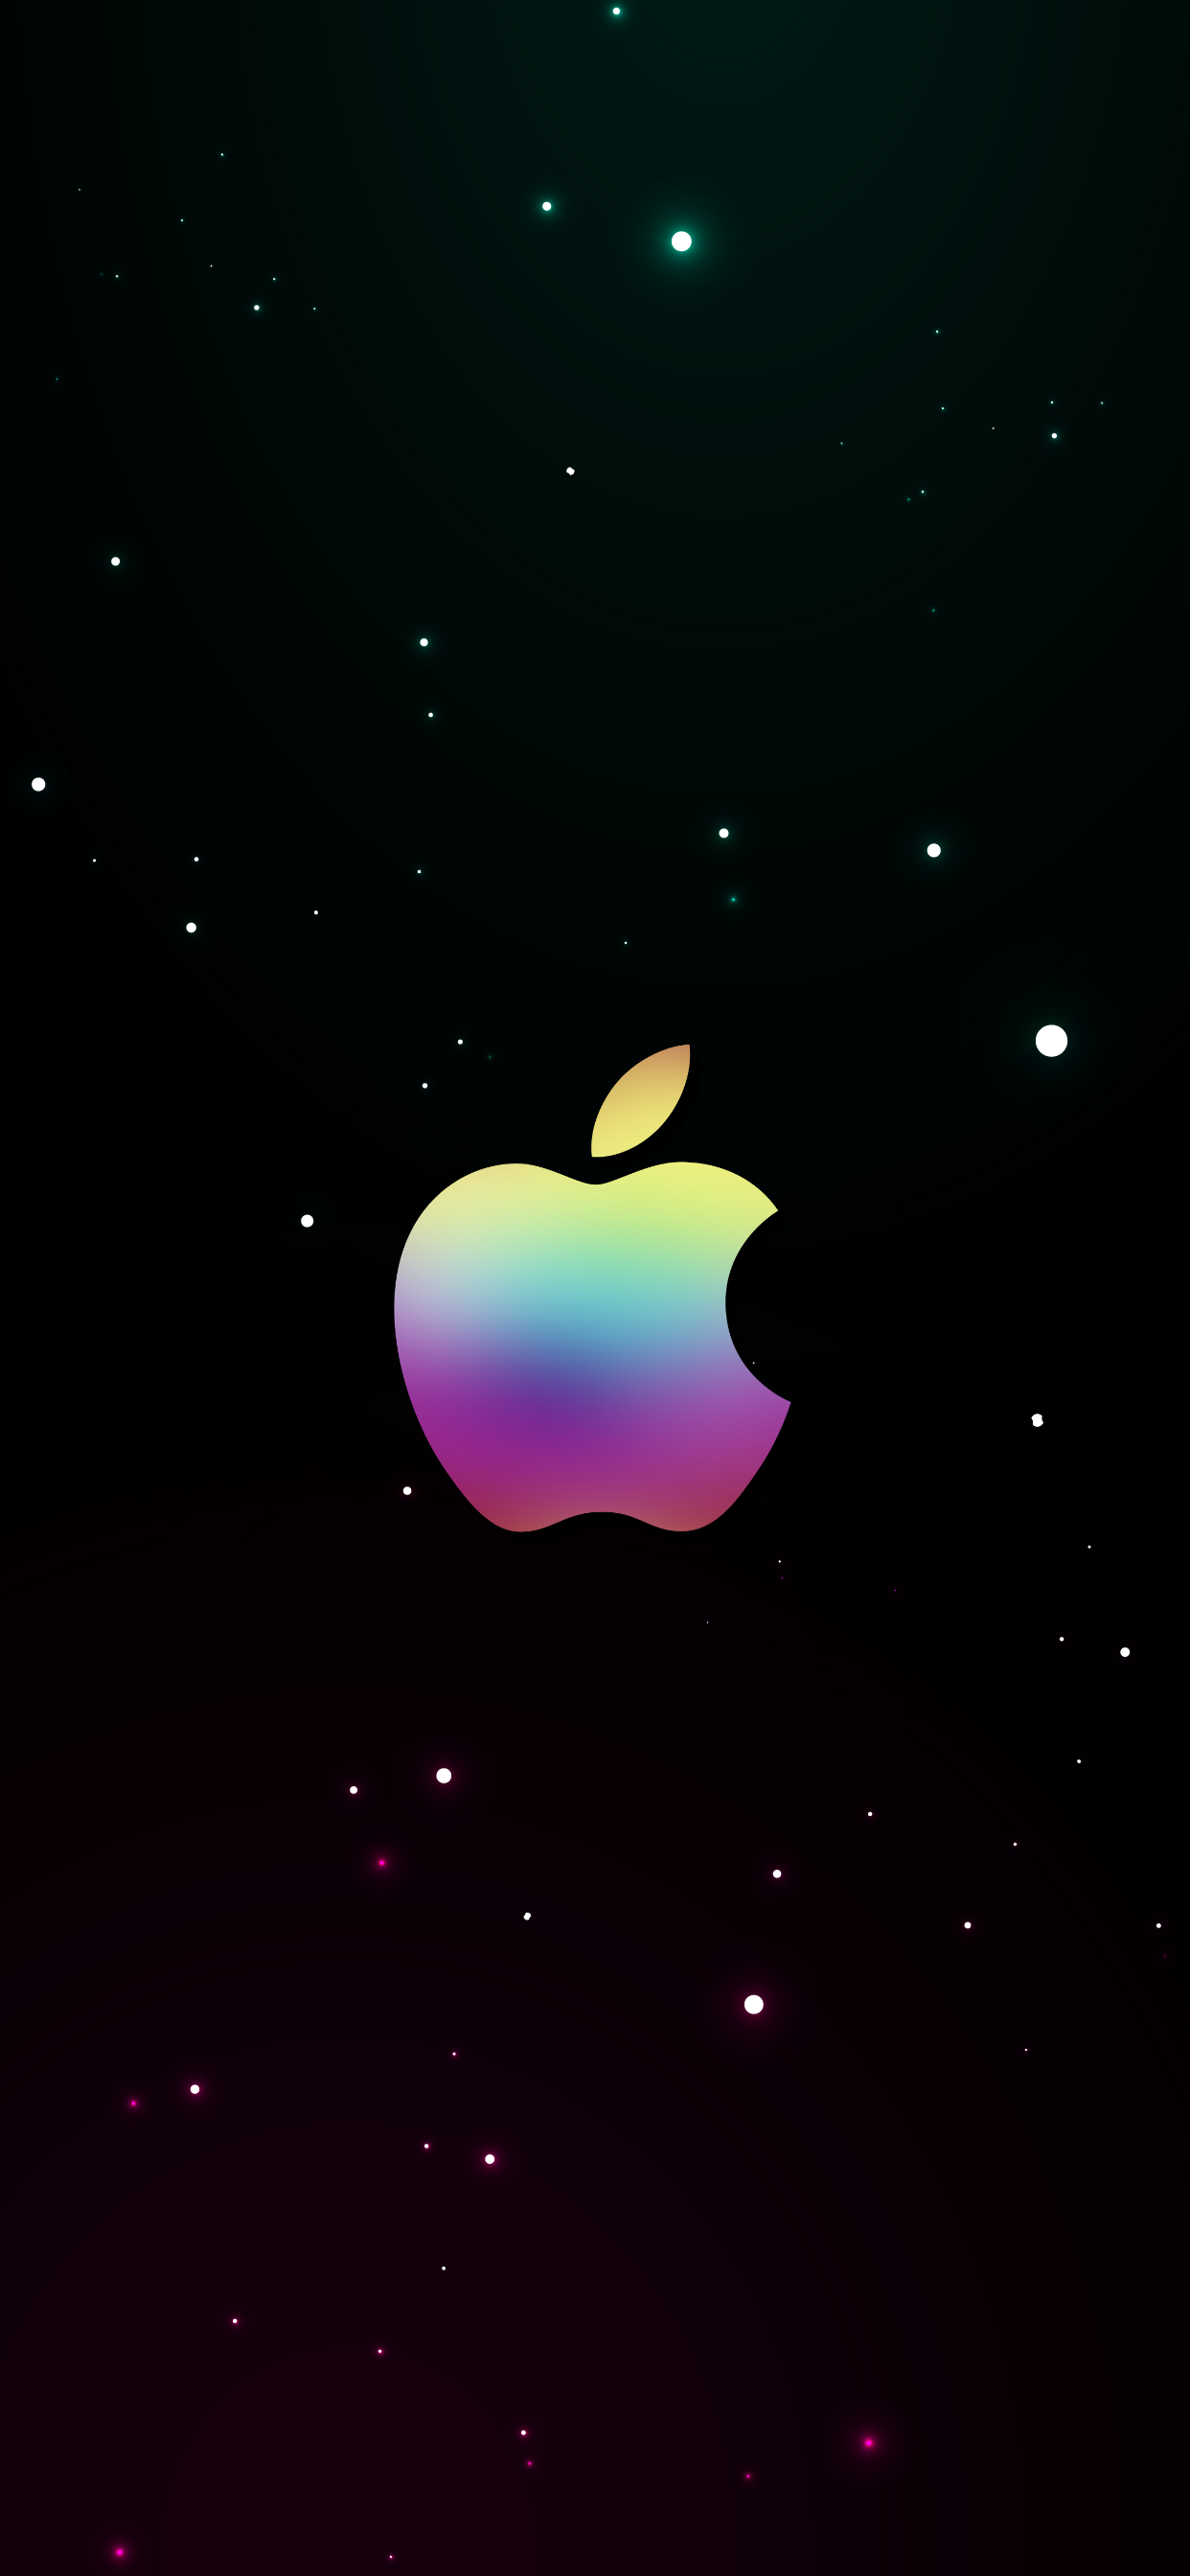 apple iphone wallpapers logo in a galaxy background hd